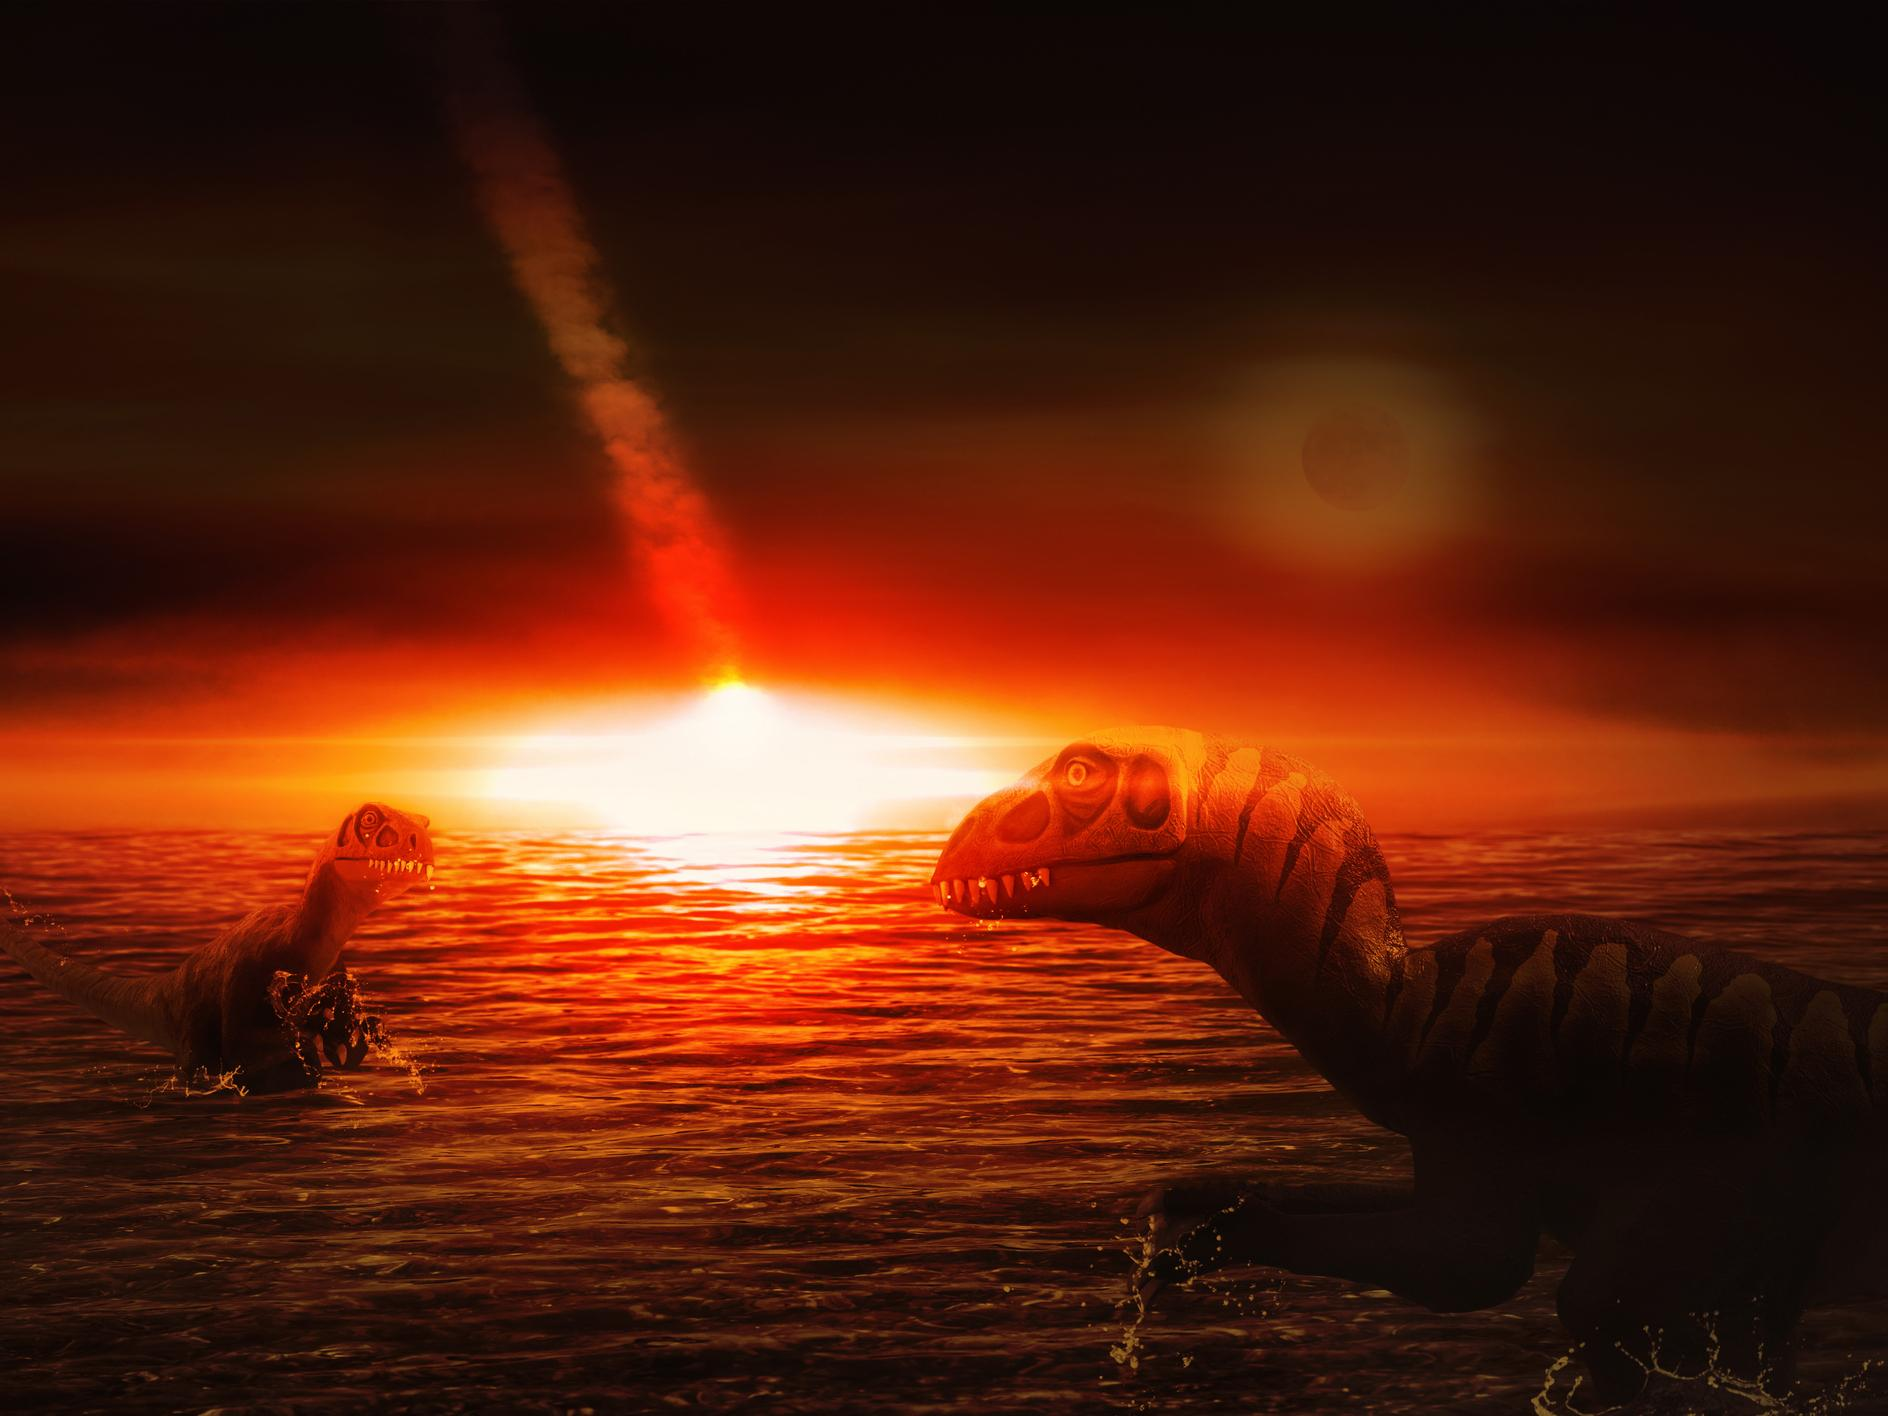 Underwater volcanoes may have contributed to dinosaur ...